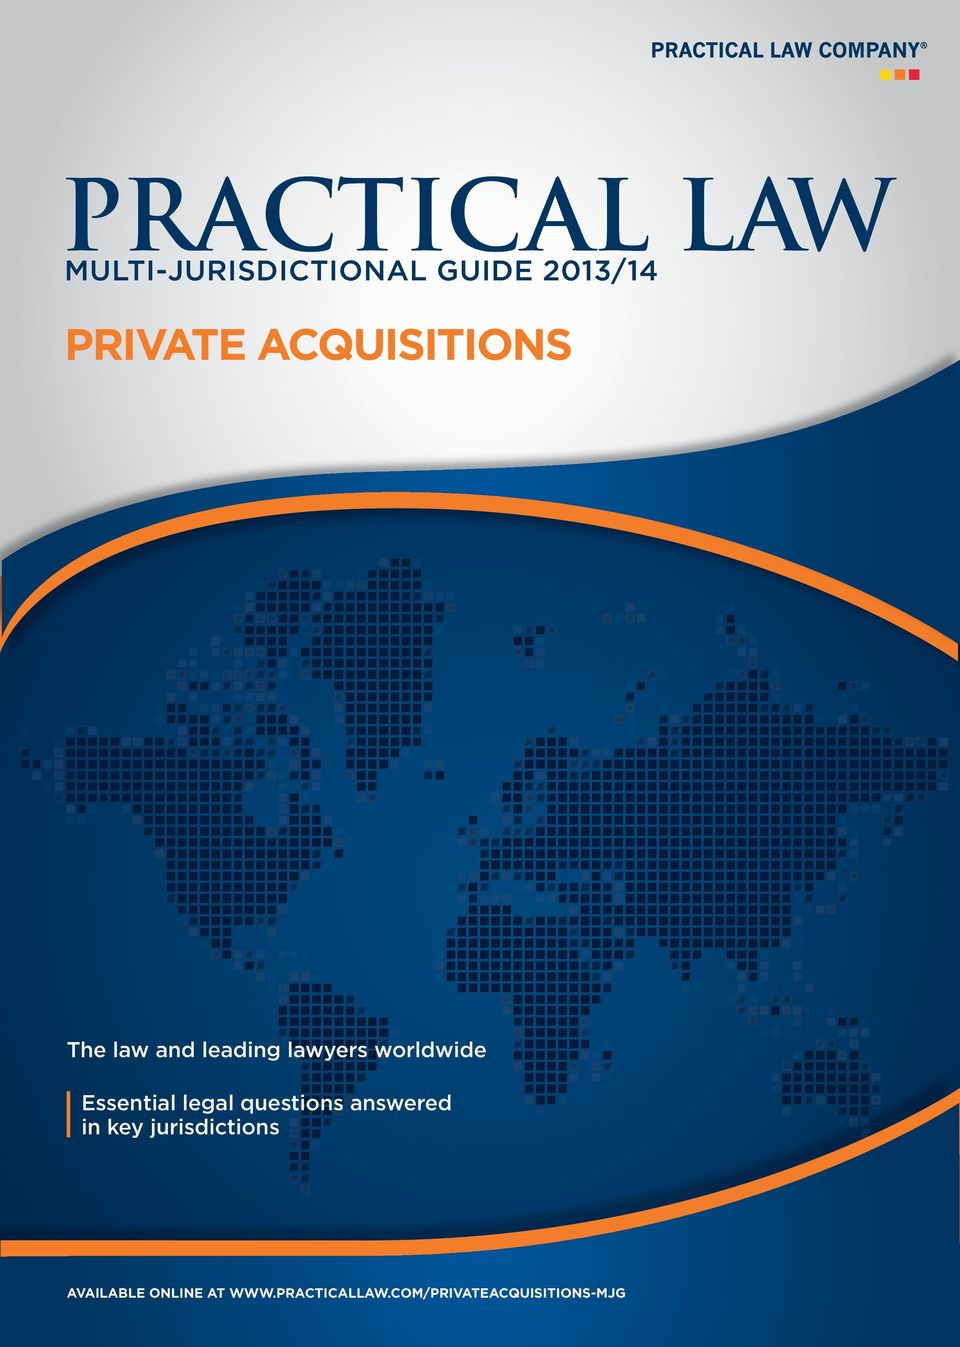 legal questions answered in key jurisdictions